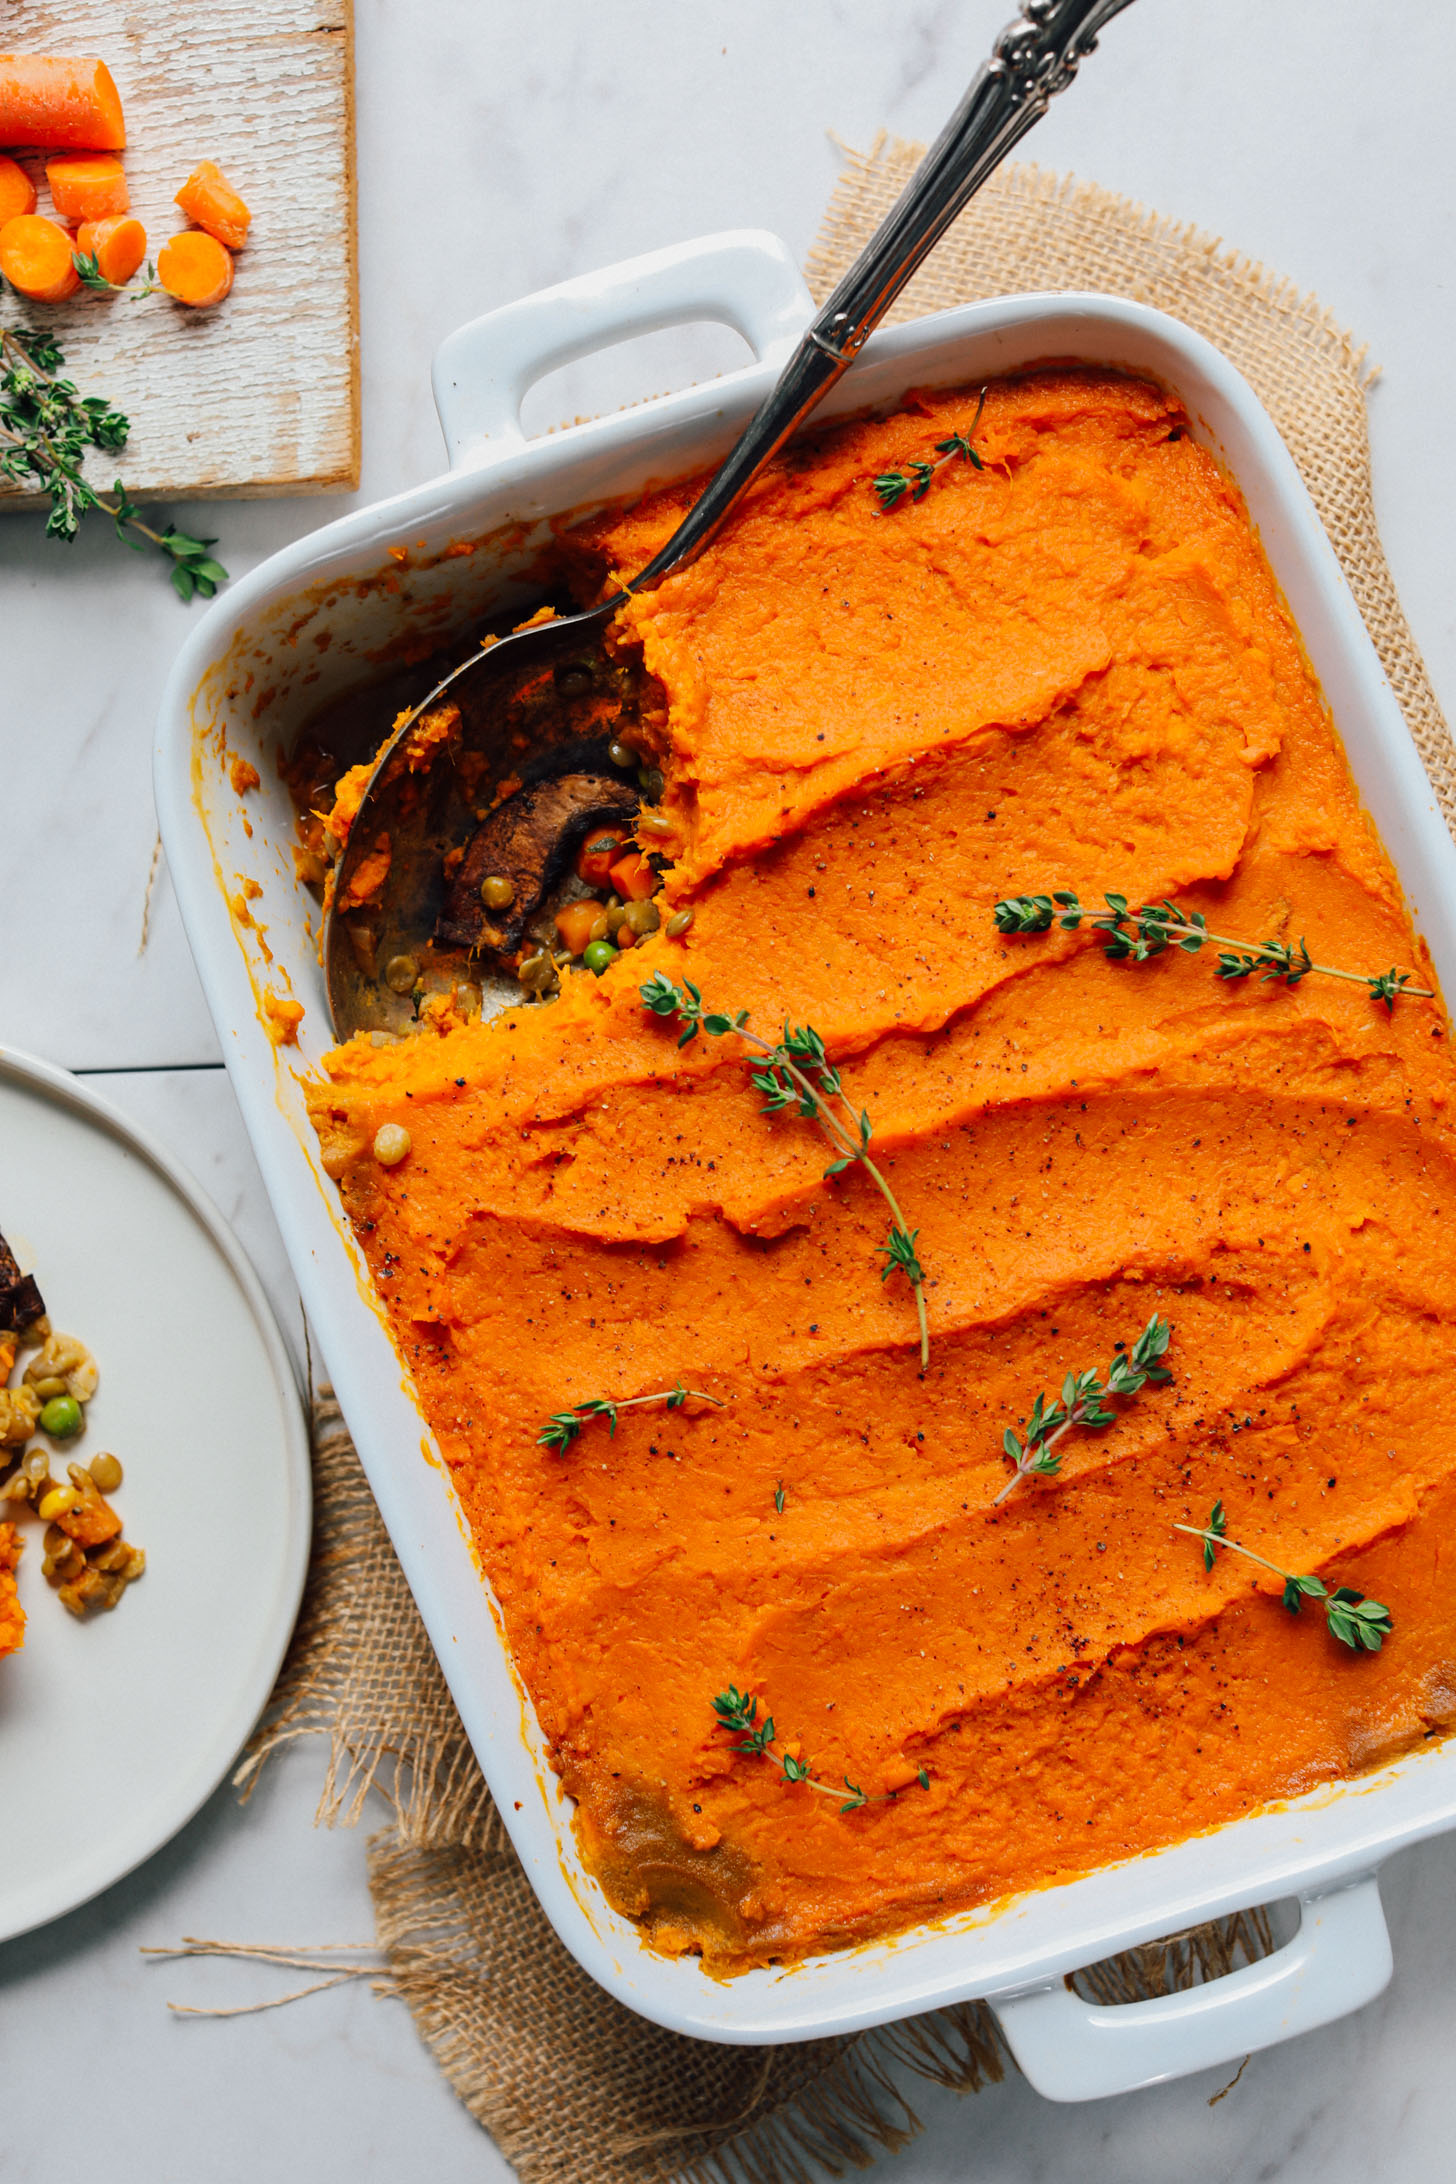 White ceramic baking dish filled with Lentil Shepherd's Pie with a Sweet Potato Crust